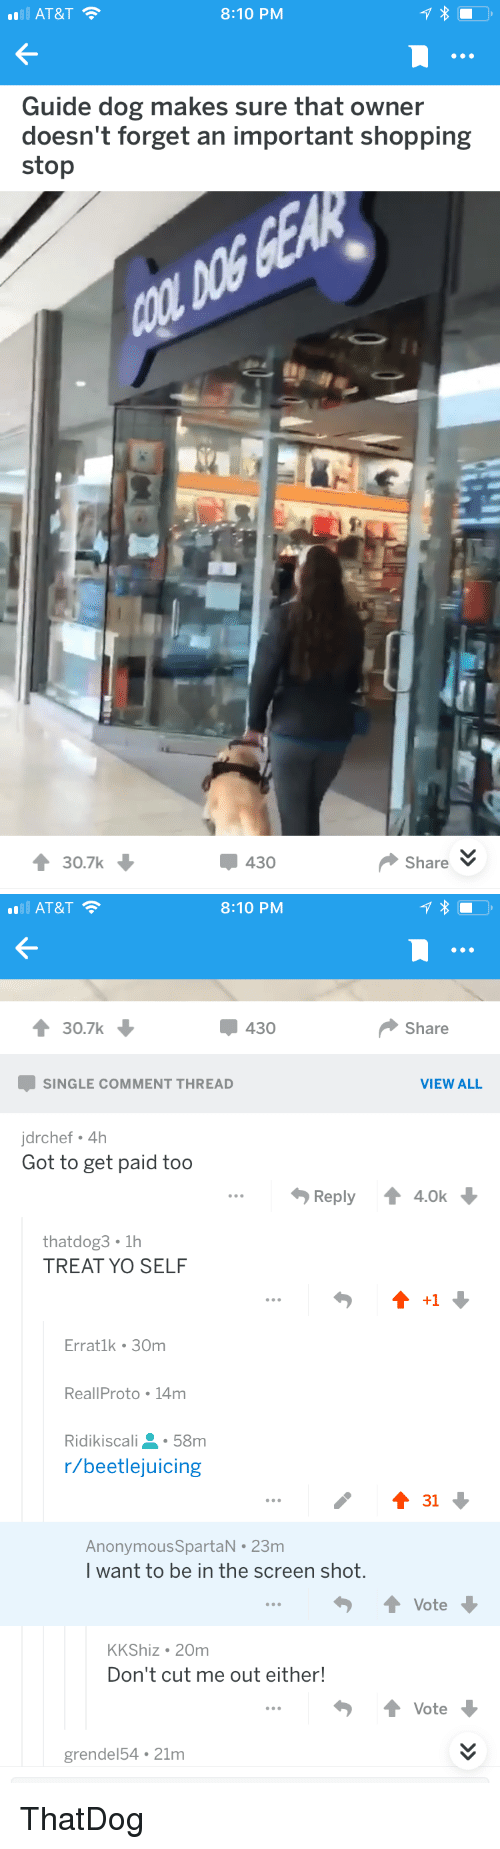 Shopping, Yo, and At&t: AT&T  8:10 PM  Guide dog makes sure that owner  doesn't forget an important shopping  stop  30.7k  430  ShareV   AT&T  8:10 PM  30.7k  430  Share  SINGLE COMMENT THREAD  VIEW ALL  jdrchef 4h  Got to get paid too  Reply ↑ 4.0k  thatdog3 1h  TREAT YO SELF  +1  Erratlk 30m  ReallProto 14m  Ridikiscali58m  r/beetlejuicing  AnonymousSpartaN 23m  I want to be in the screen shot  ↑ Vote  KKShiz 20m  Don't cut me out either!  ↑ Vote  grendel54 21m ThatDog